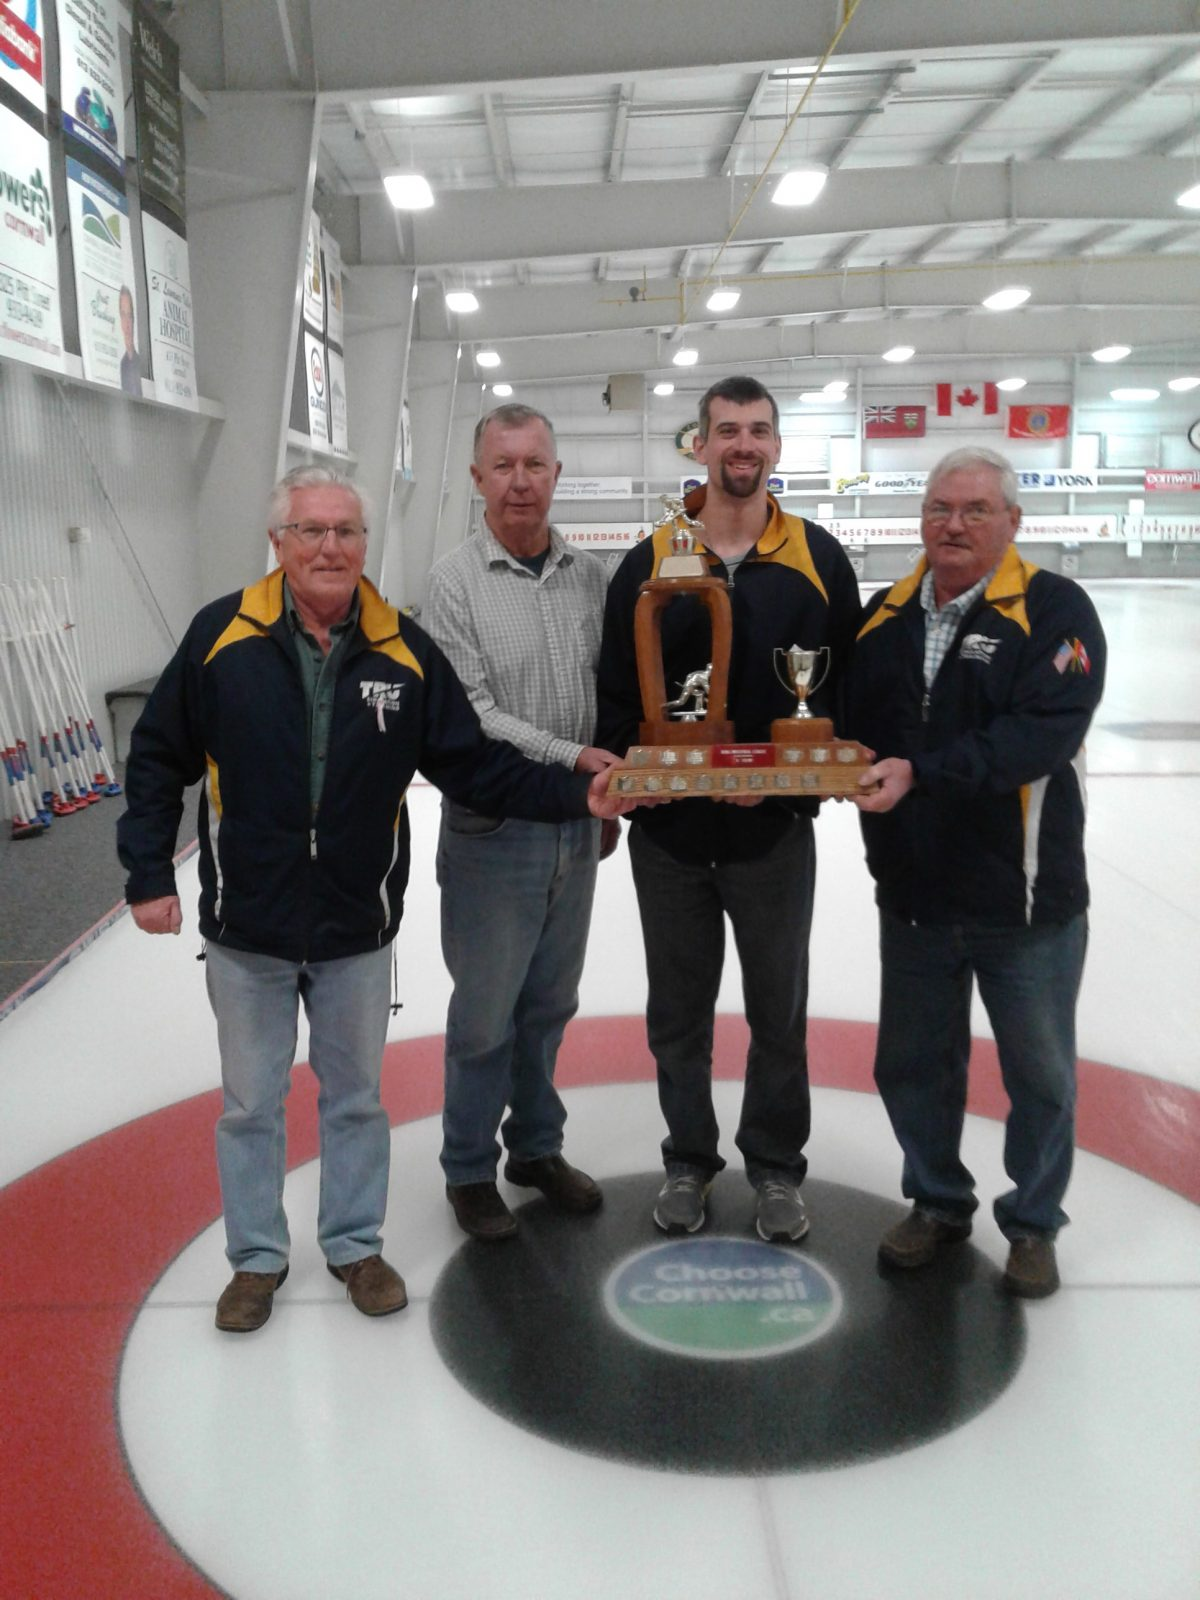 Curling A 2018 winners